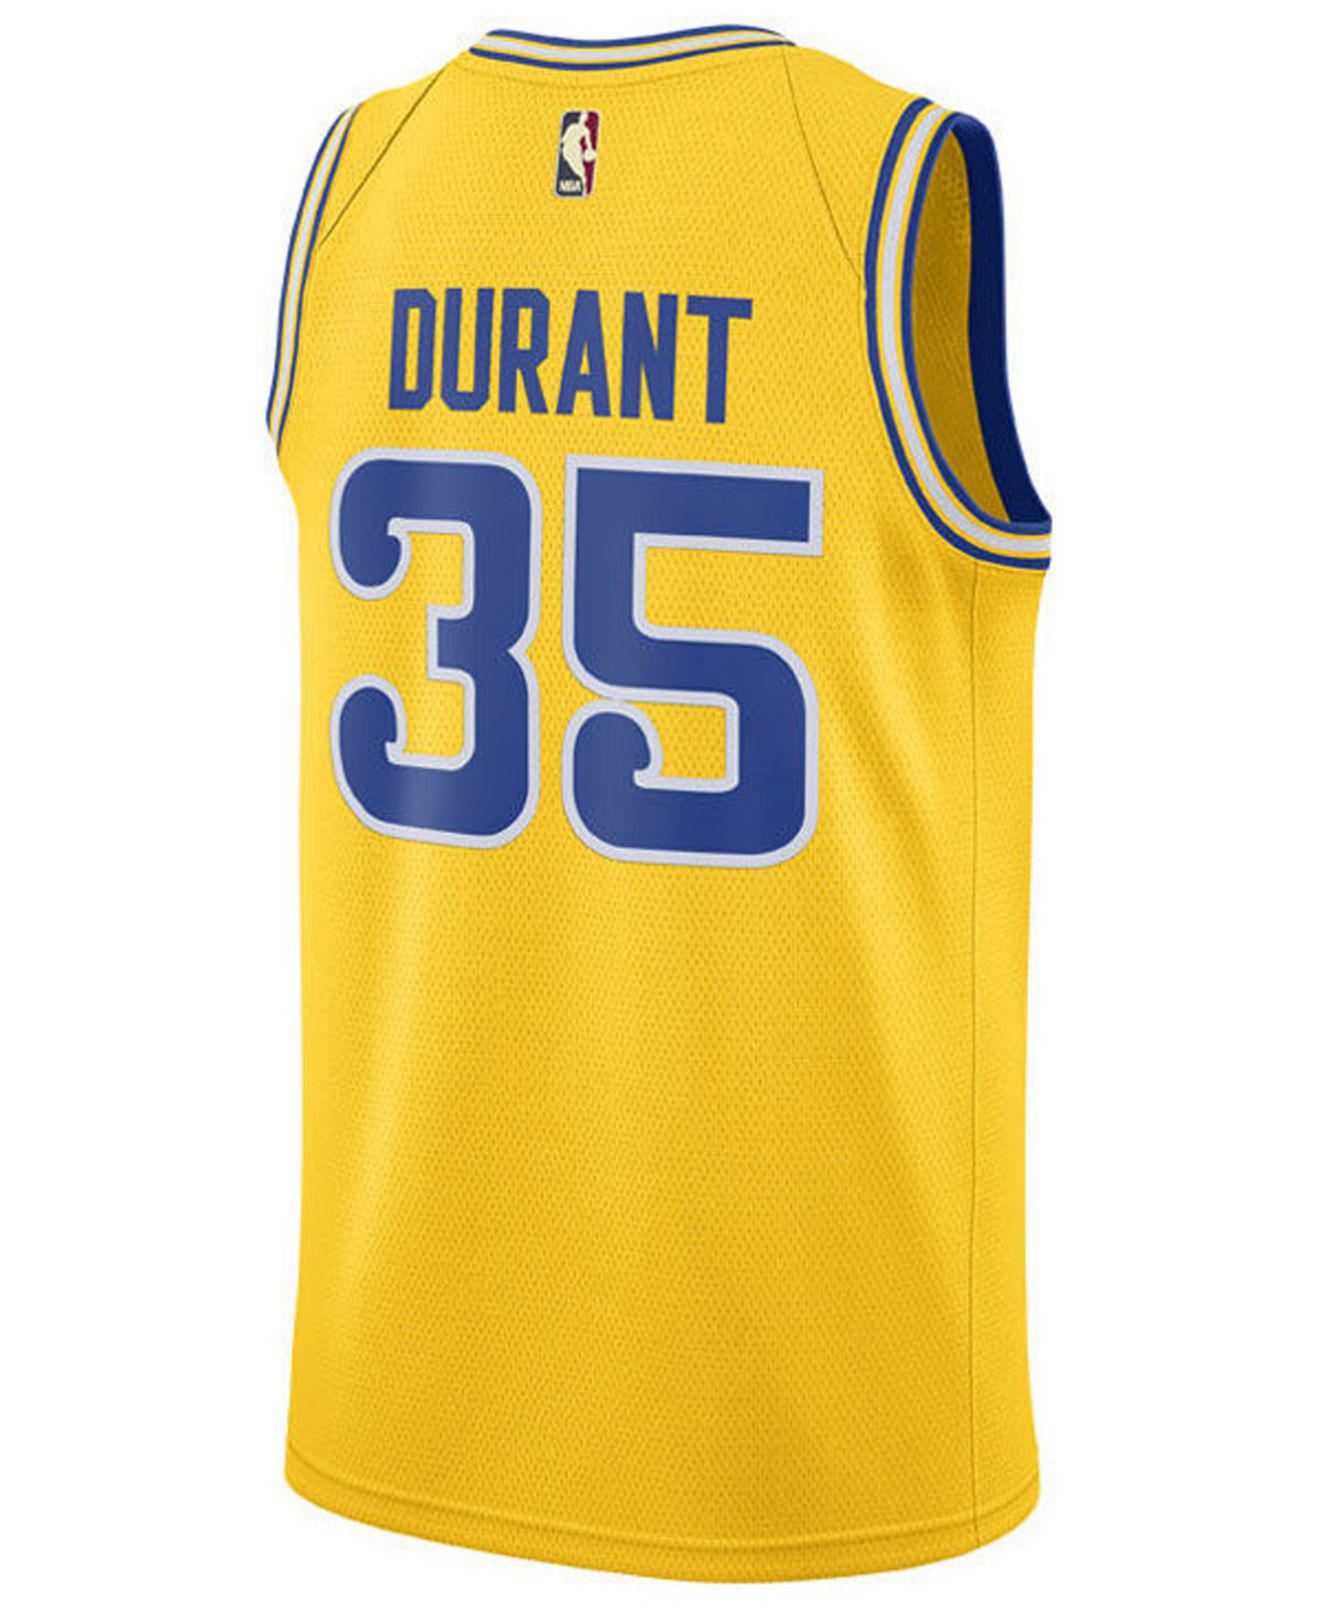 e53fce3cc Lyst - Nike Kevin Durant Golden State Warriors Hardwood Classic Swingman  Jersey in Yellow for Men